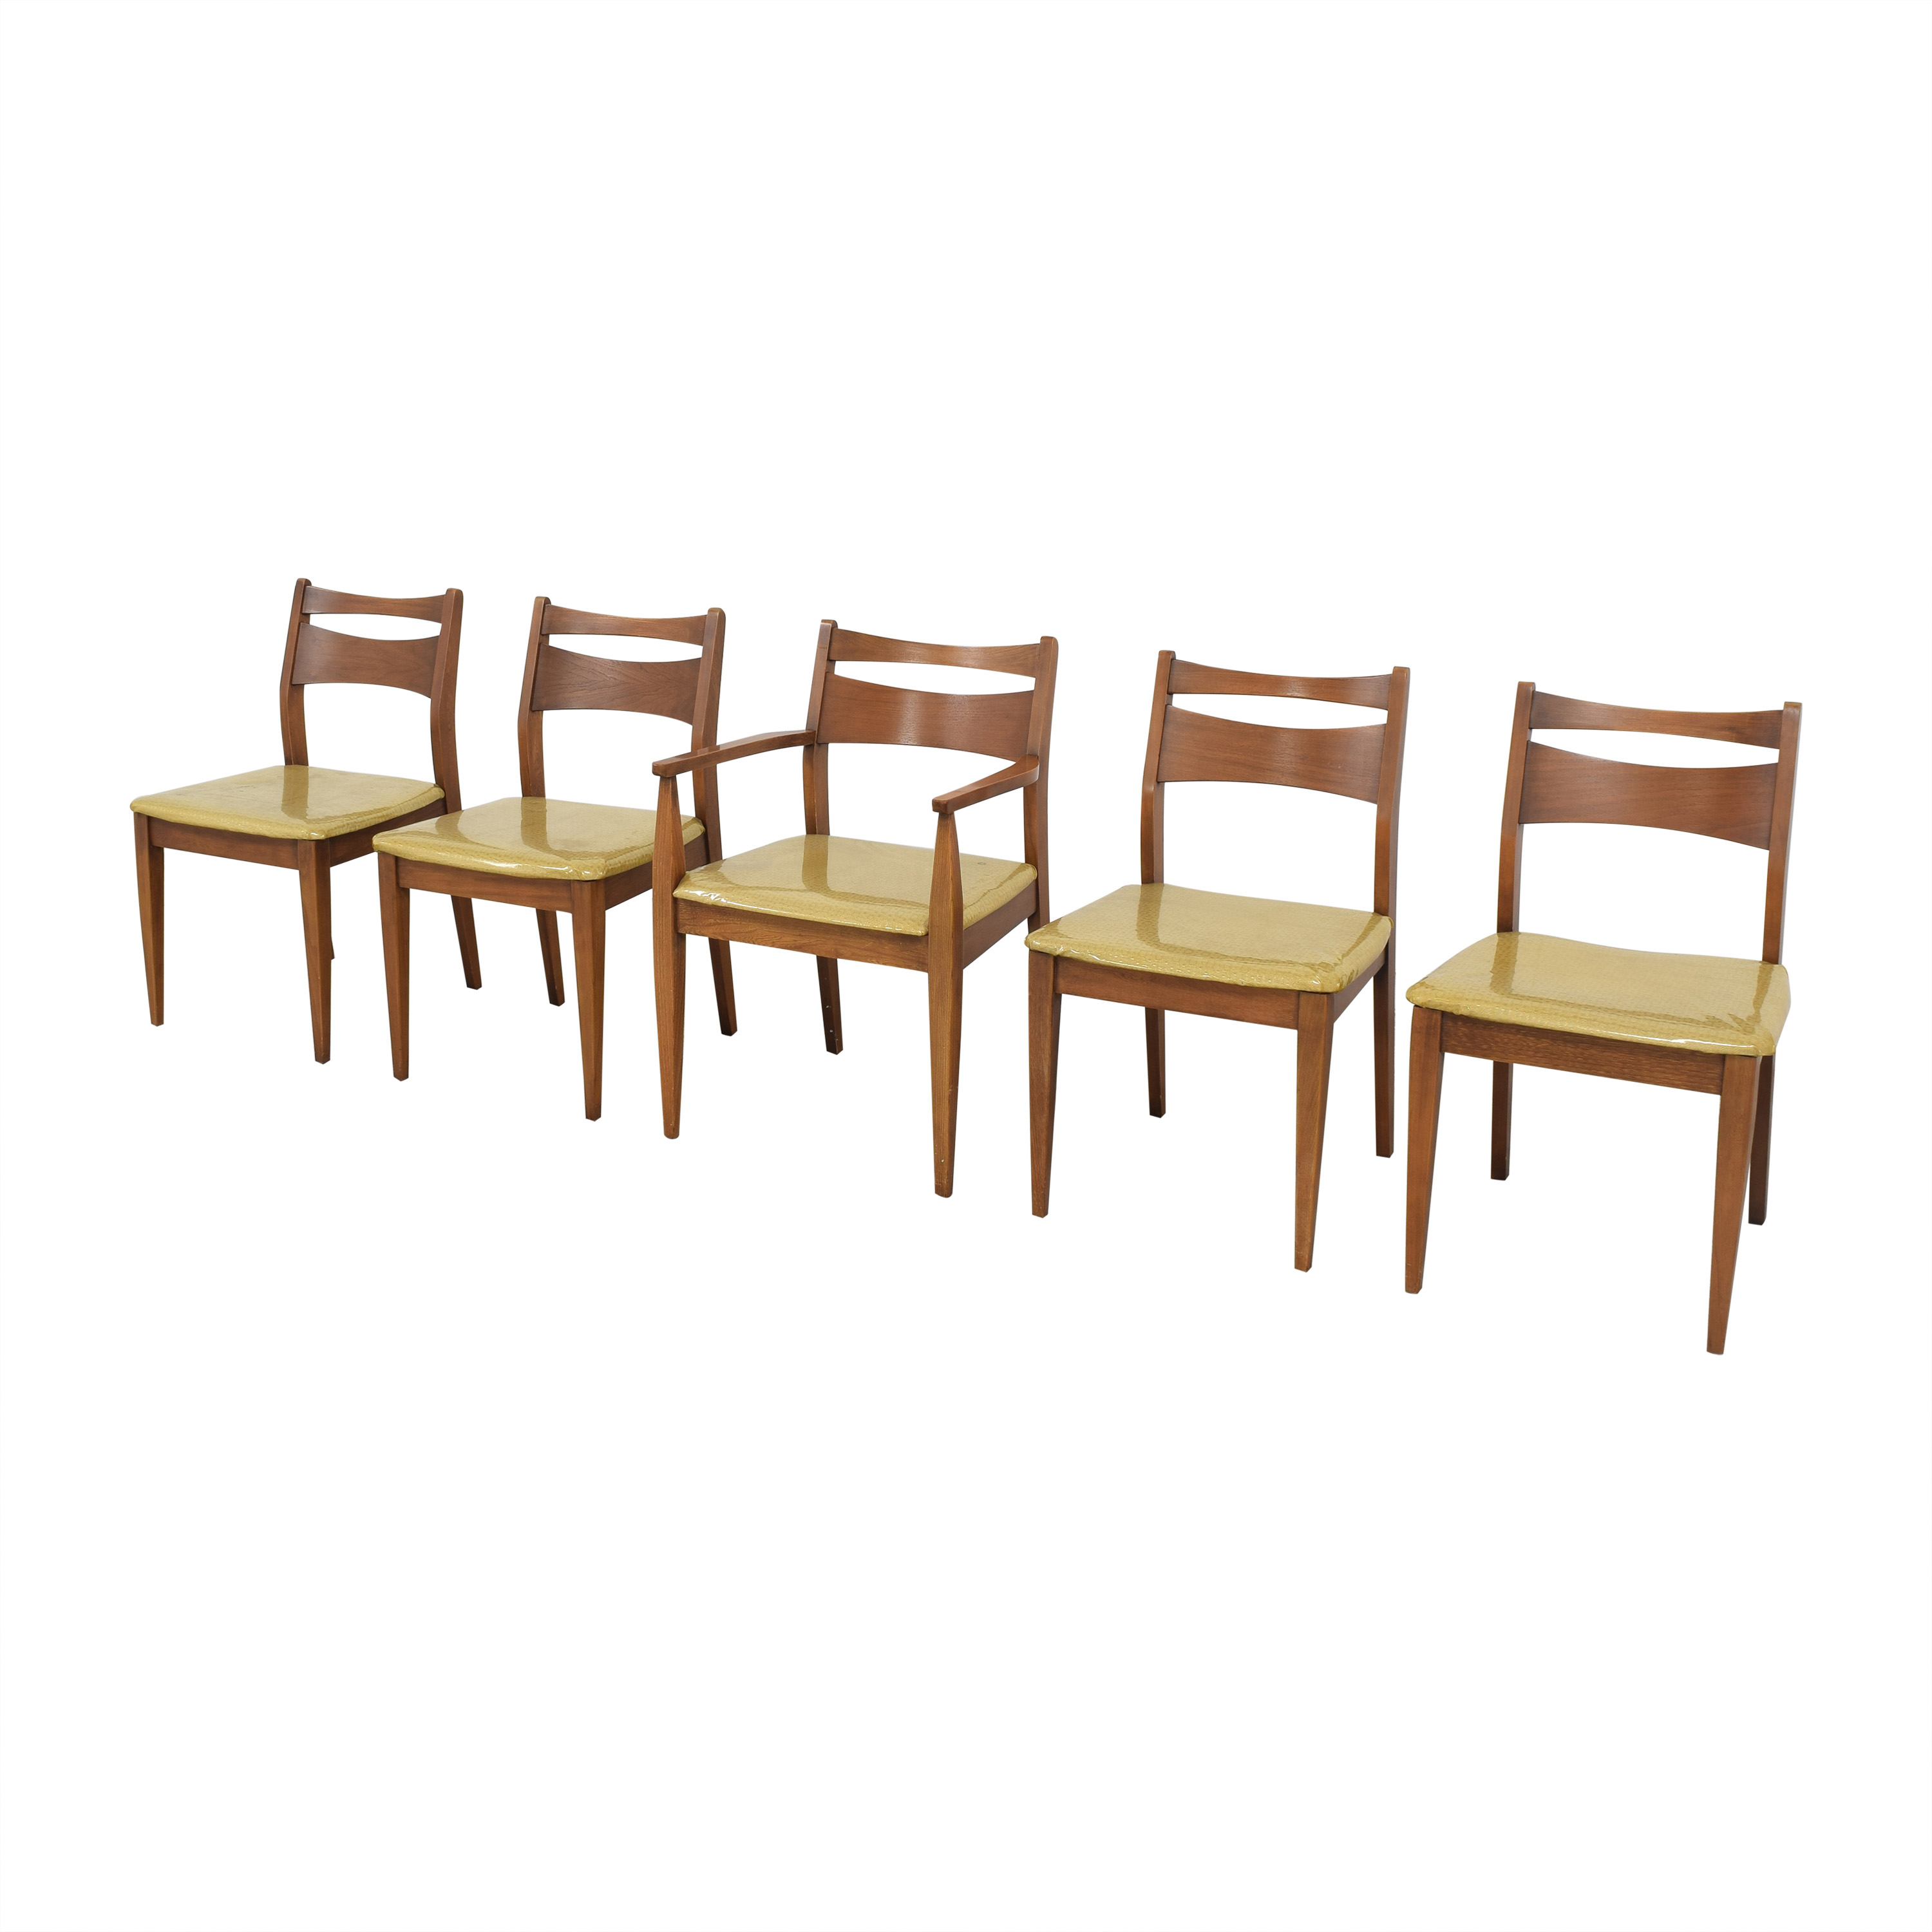 65 Off Vintage Mid Century Modern Dining Chairs